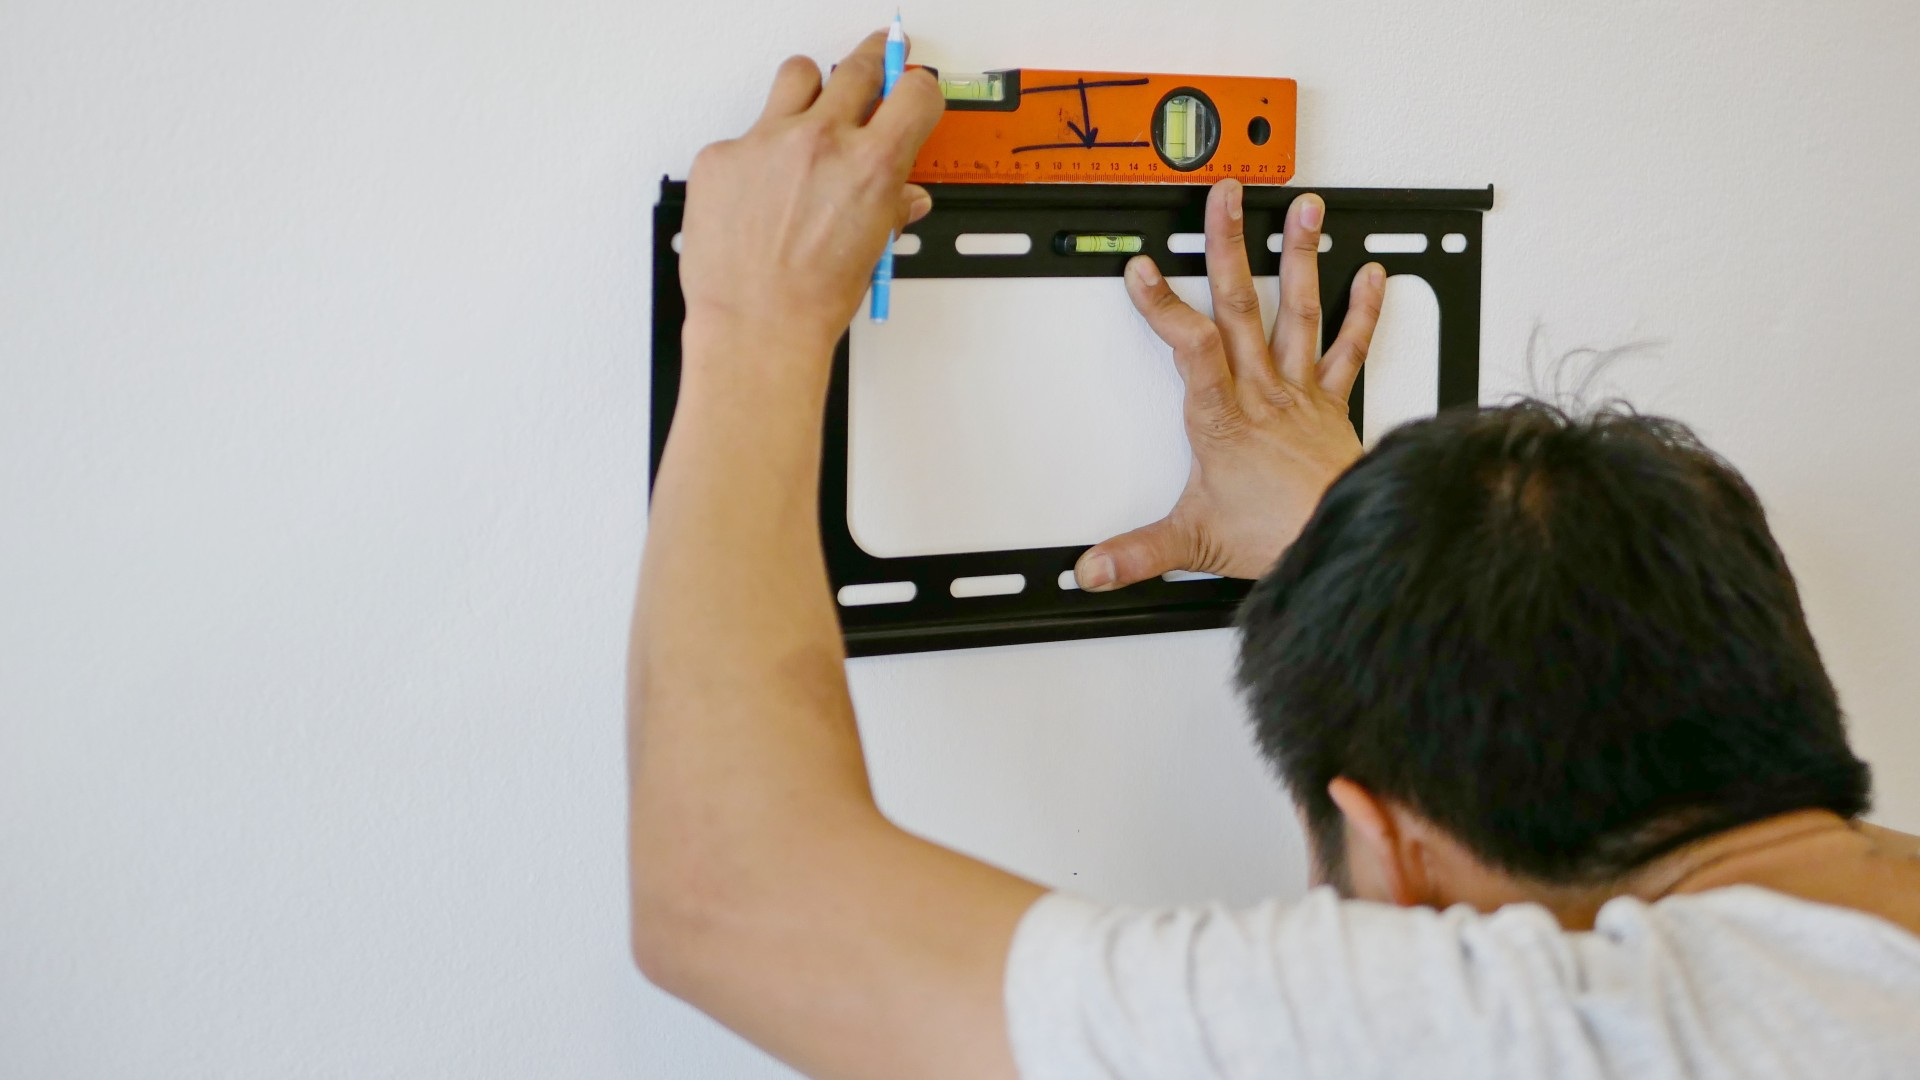 How to Hire a TV Installation Professional: 10 Things to Look for